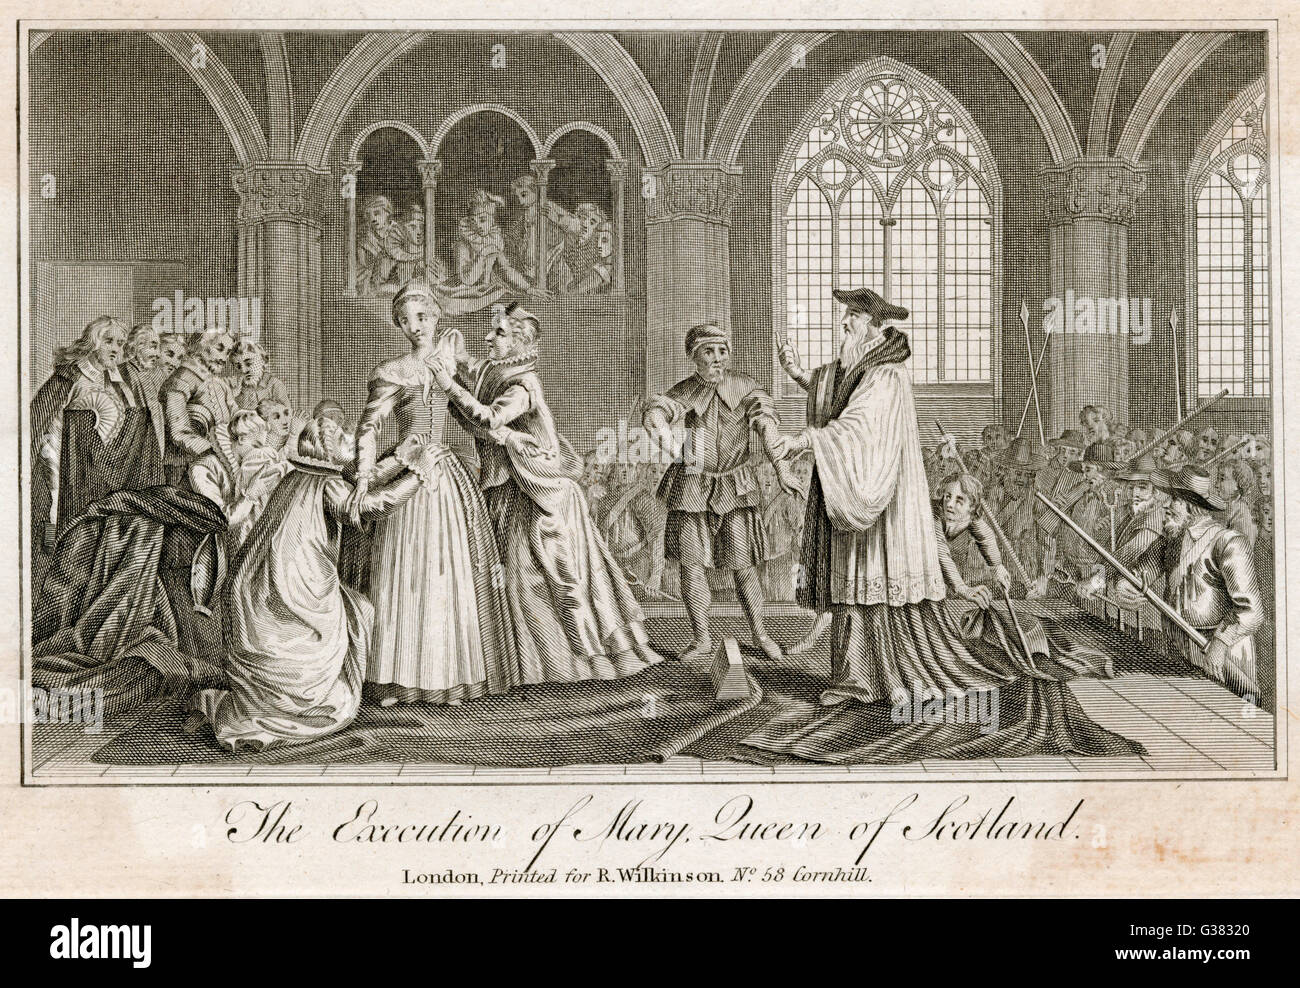 The execution of Mary Queen of Scots Date: 8 February 1587